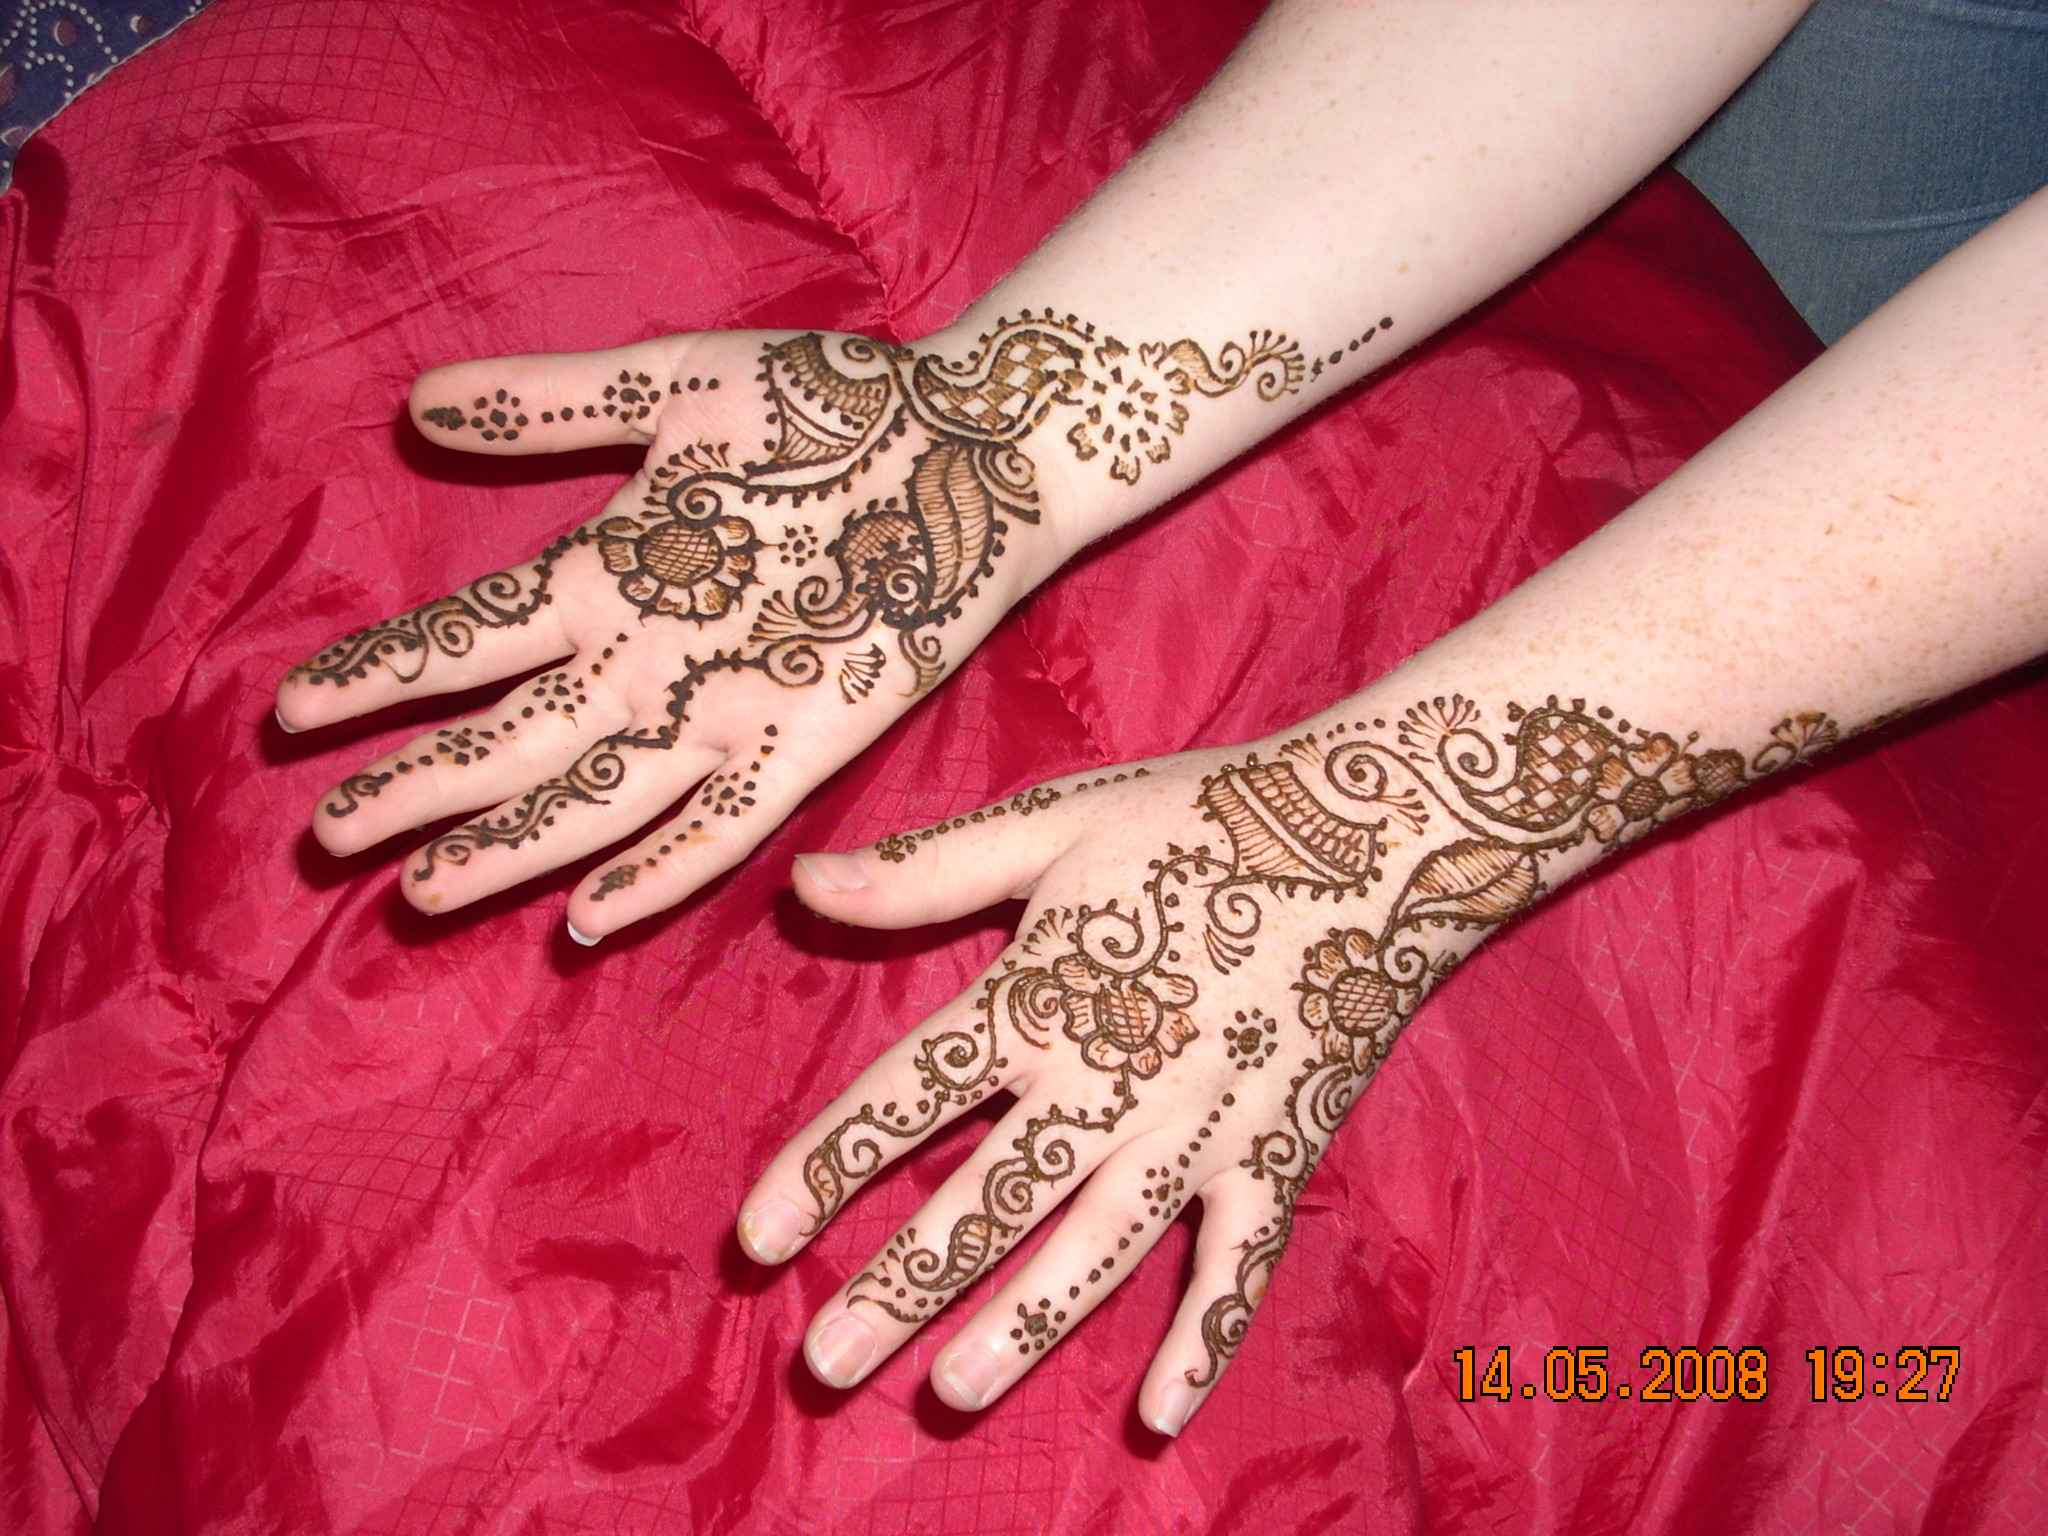 Harsha Mehendi Art, Laxmi Residency Co-operative Housing Society, Main Road, Thane West, Thane, Maharashtra, 400604, India